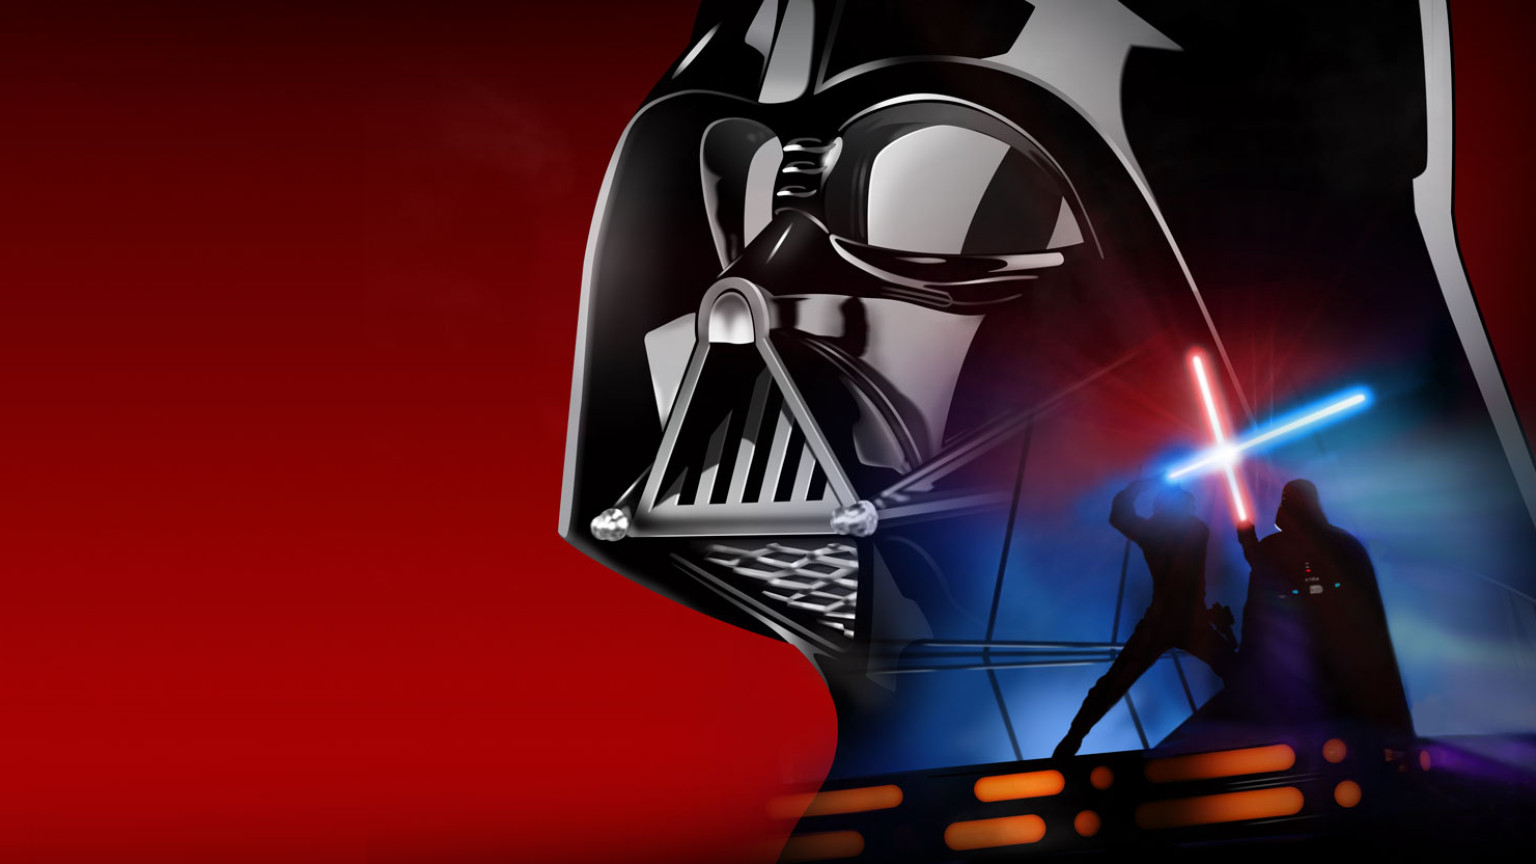 Star Wars: The Complete Saga Blu-ray hits a new Amazon all-time low at $58